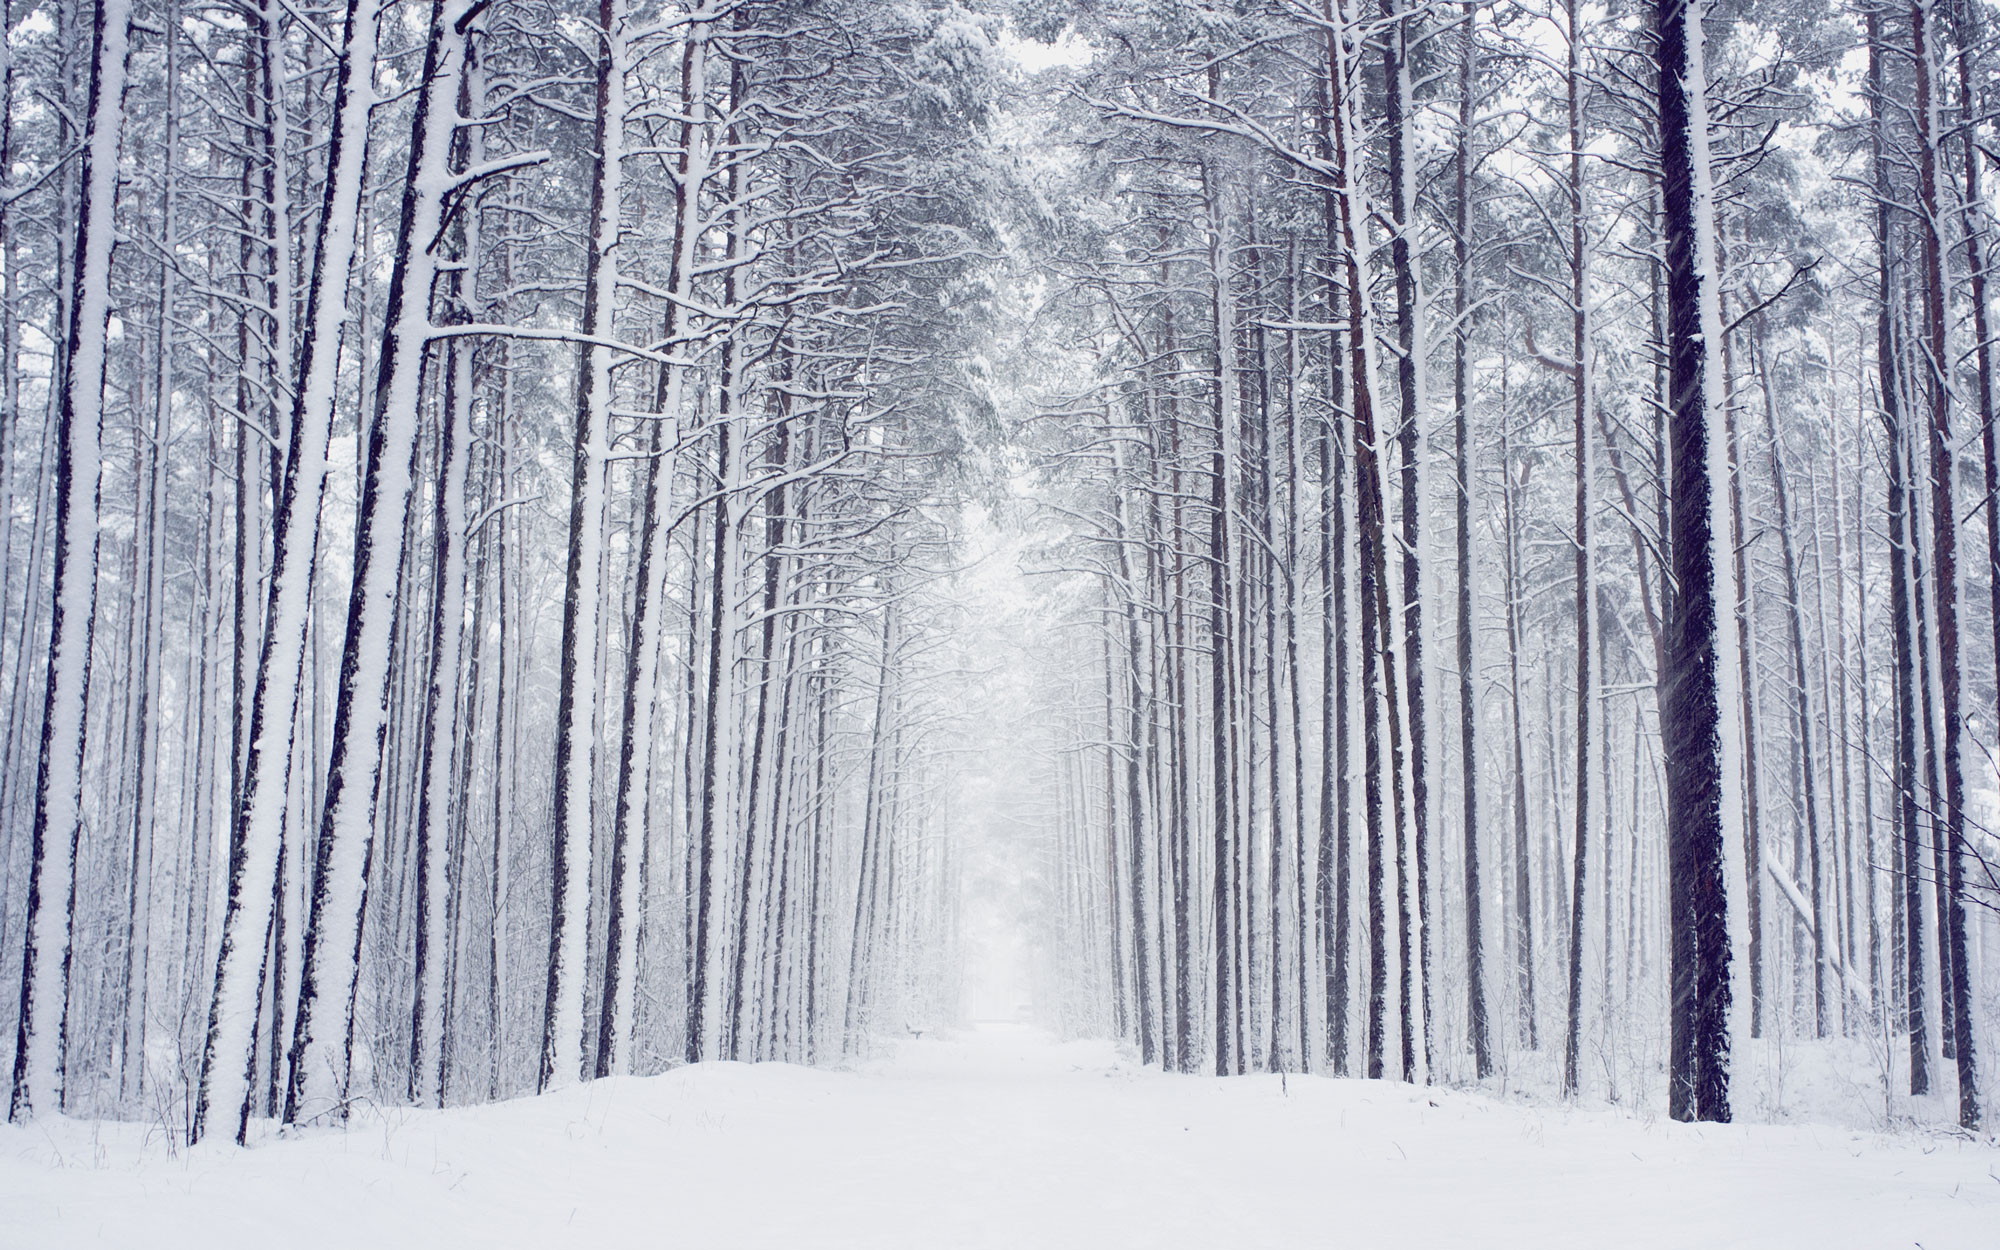 22 Winter Pictures: View Beautiful Images of Winter Scenes